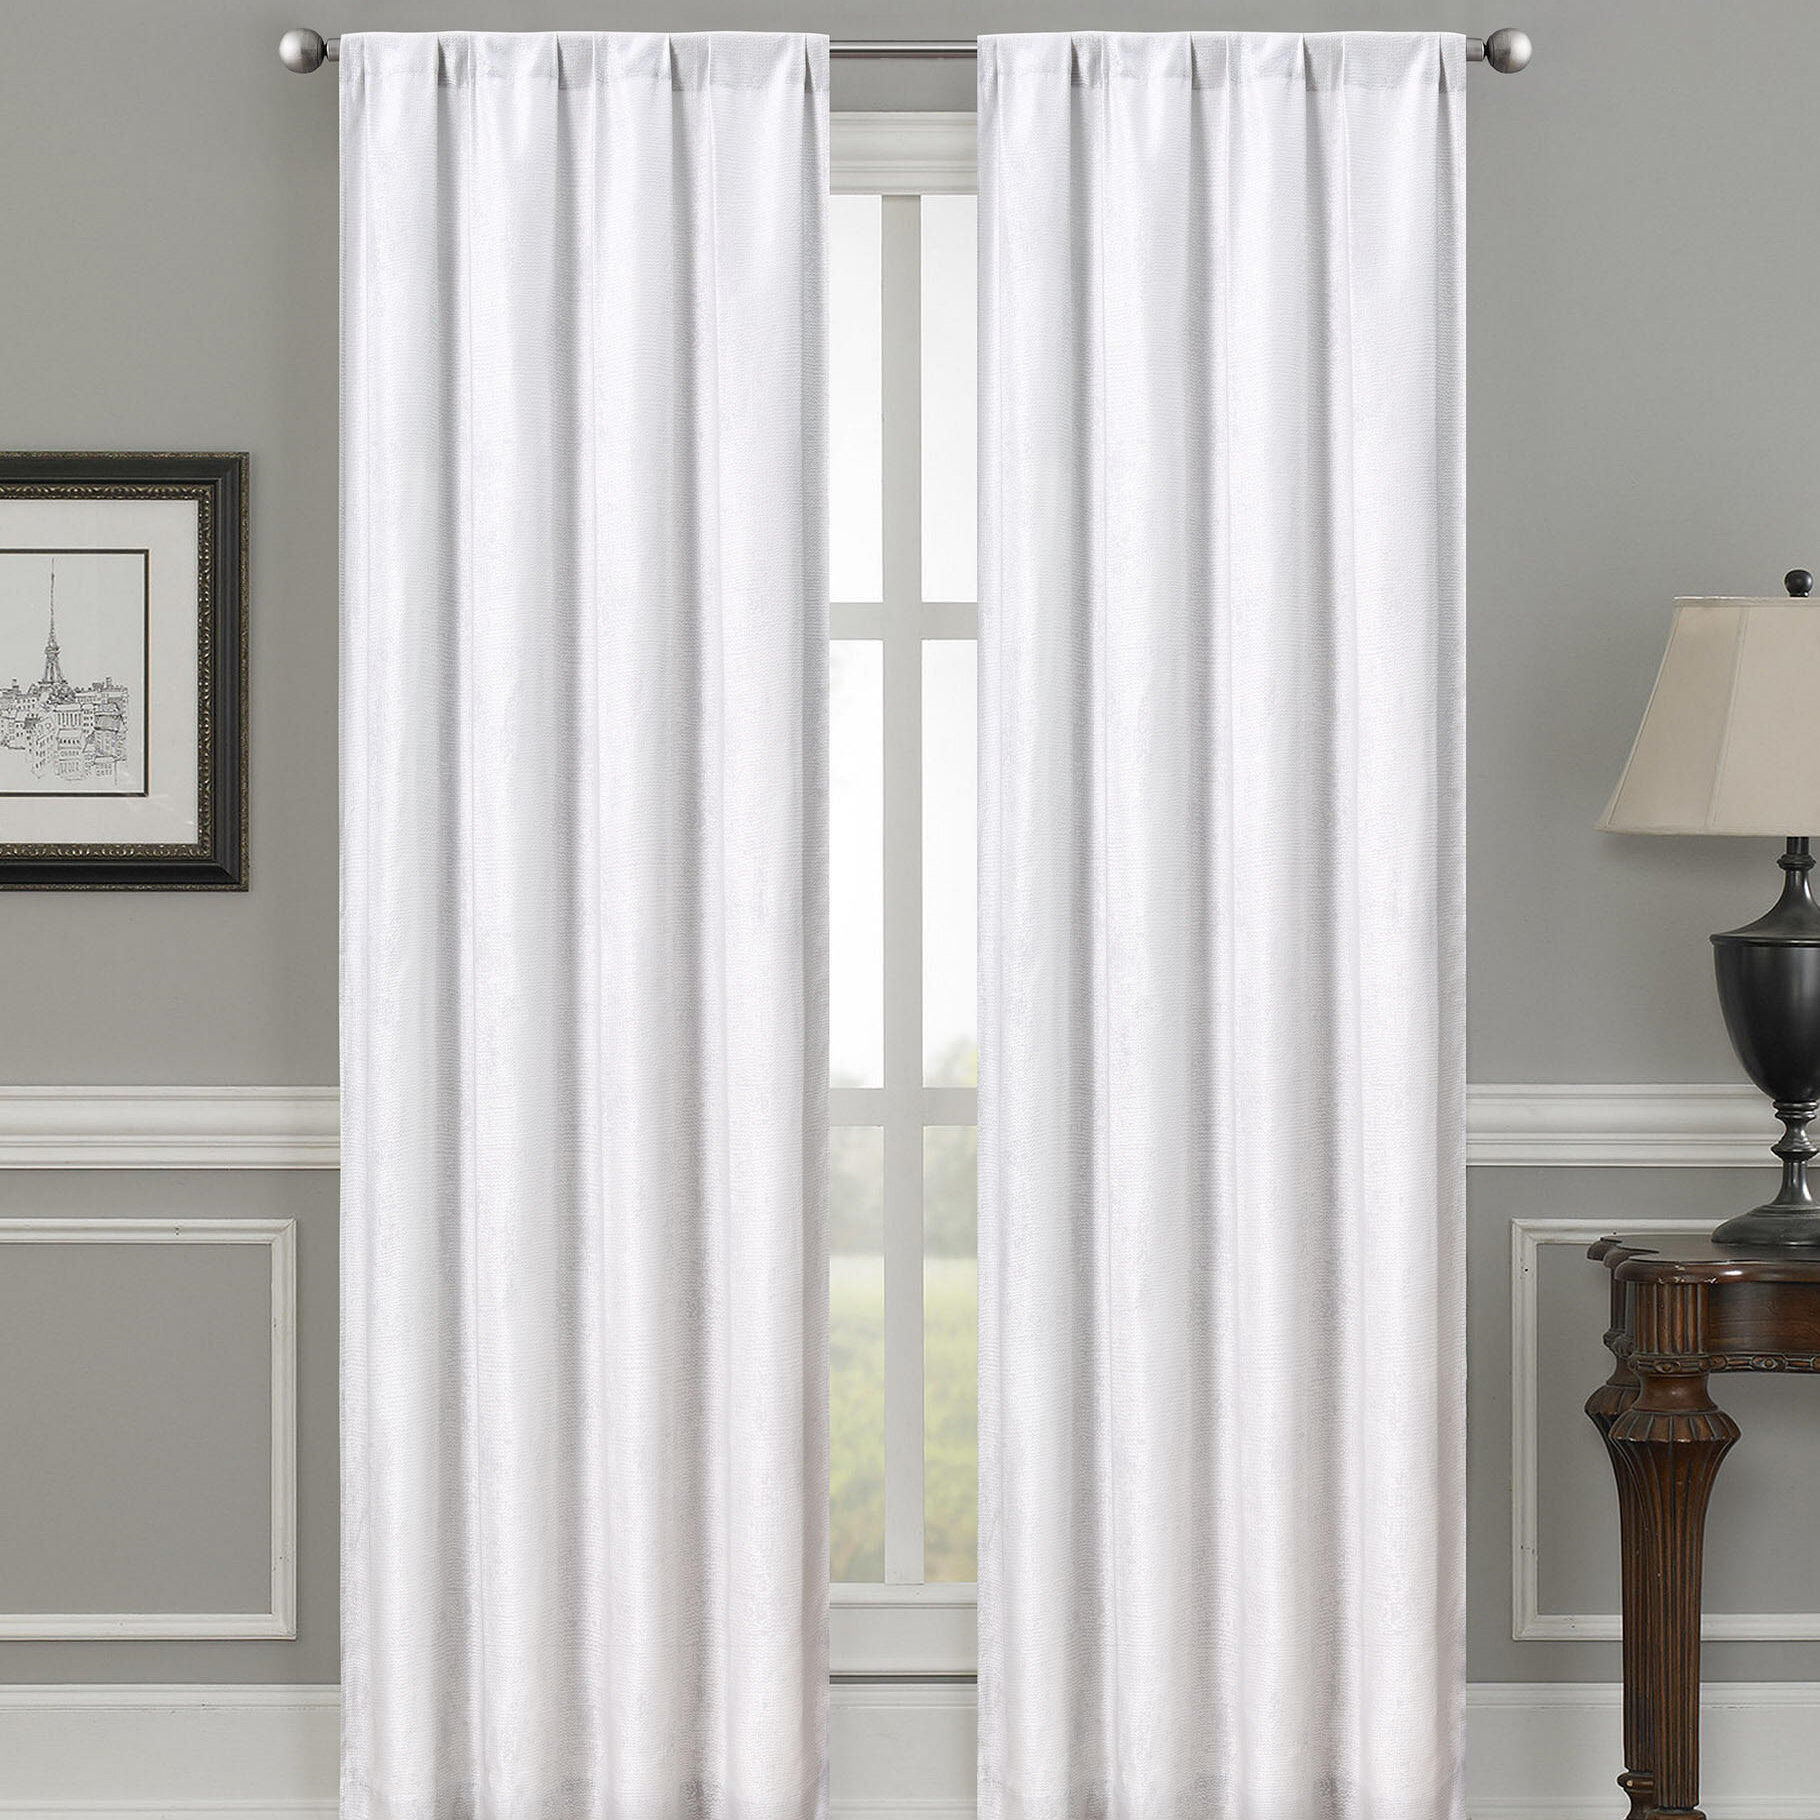 Solid Mercer41 Curtains Drapes You Ll Love In 2021 Wayfair